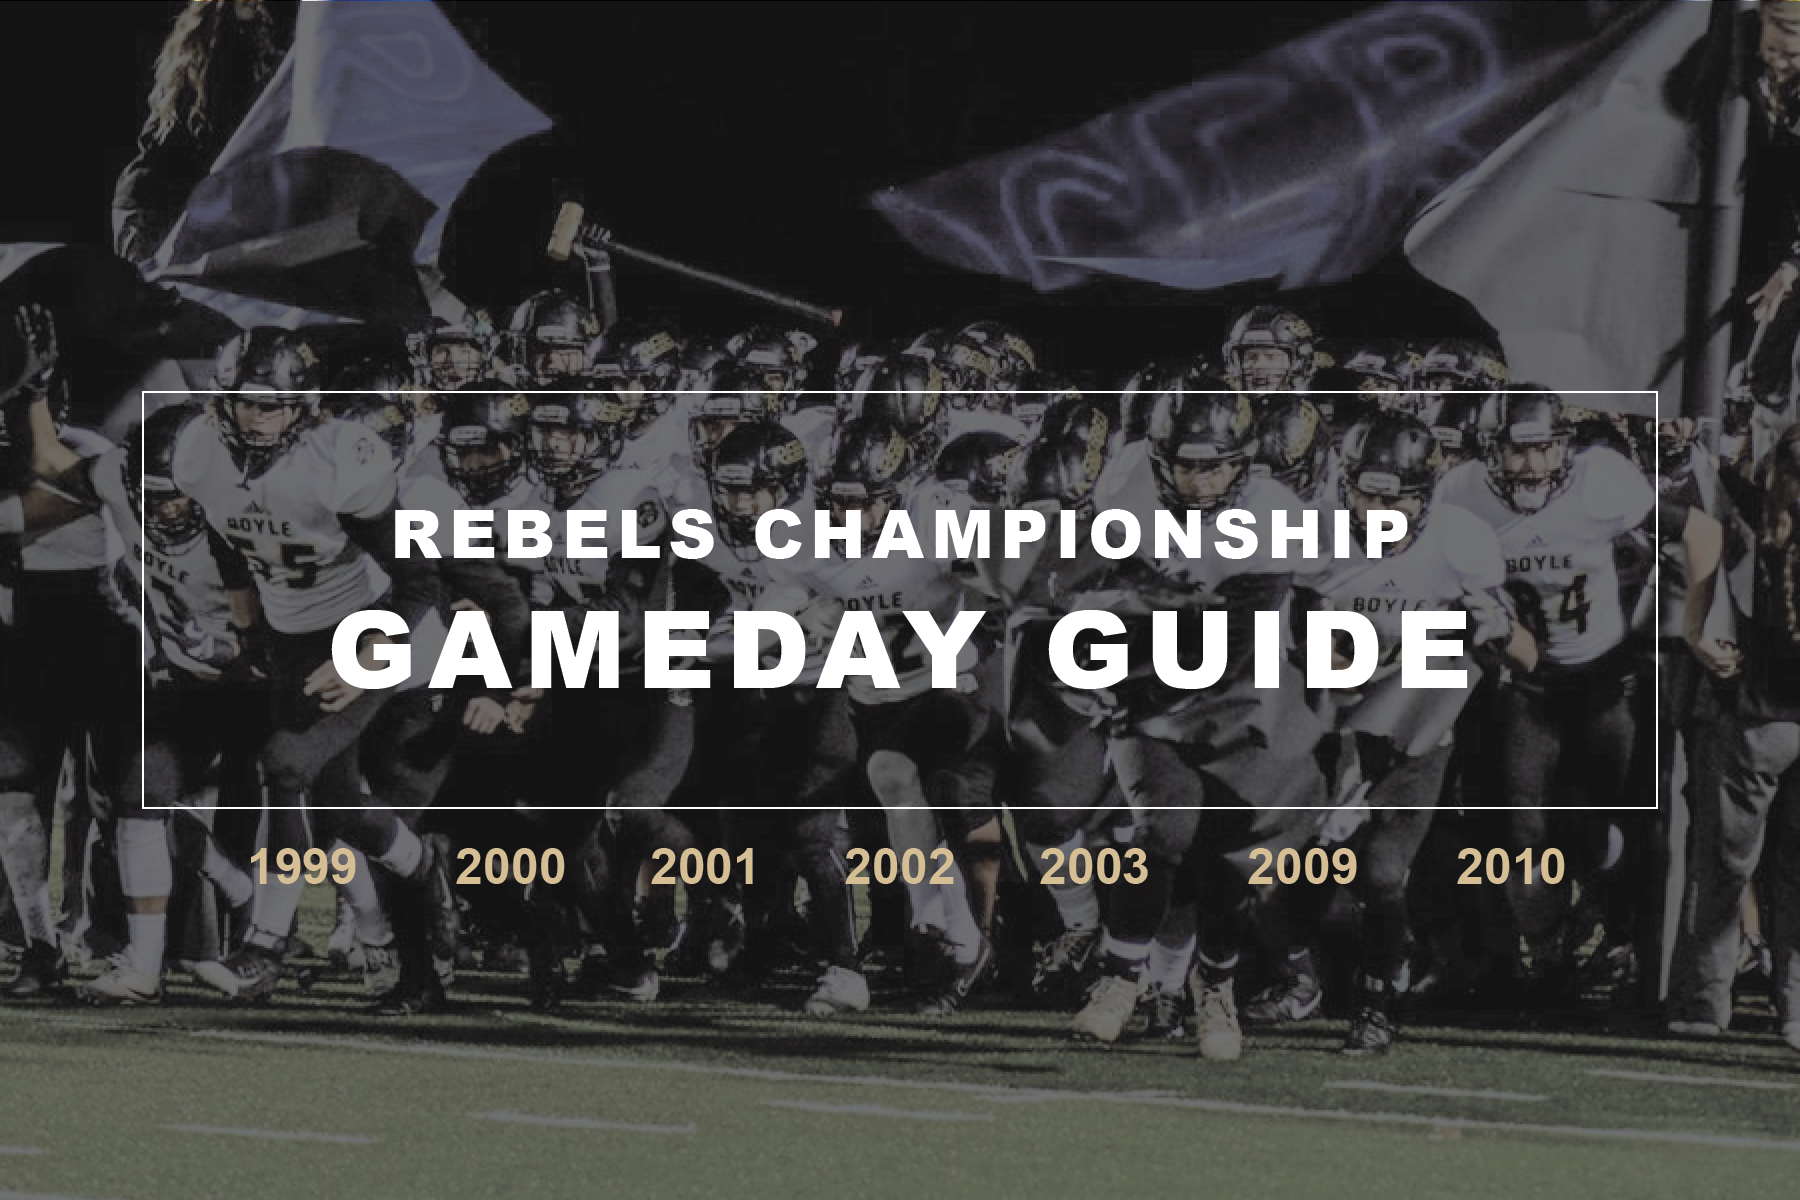 Gameday Guide